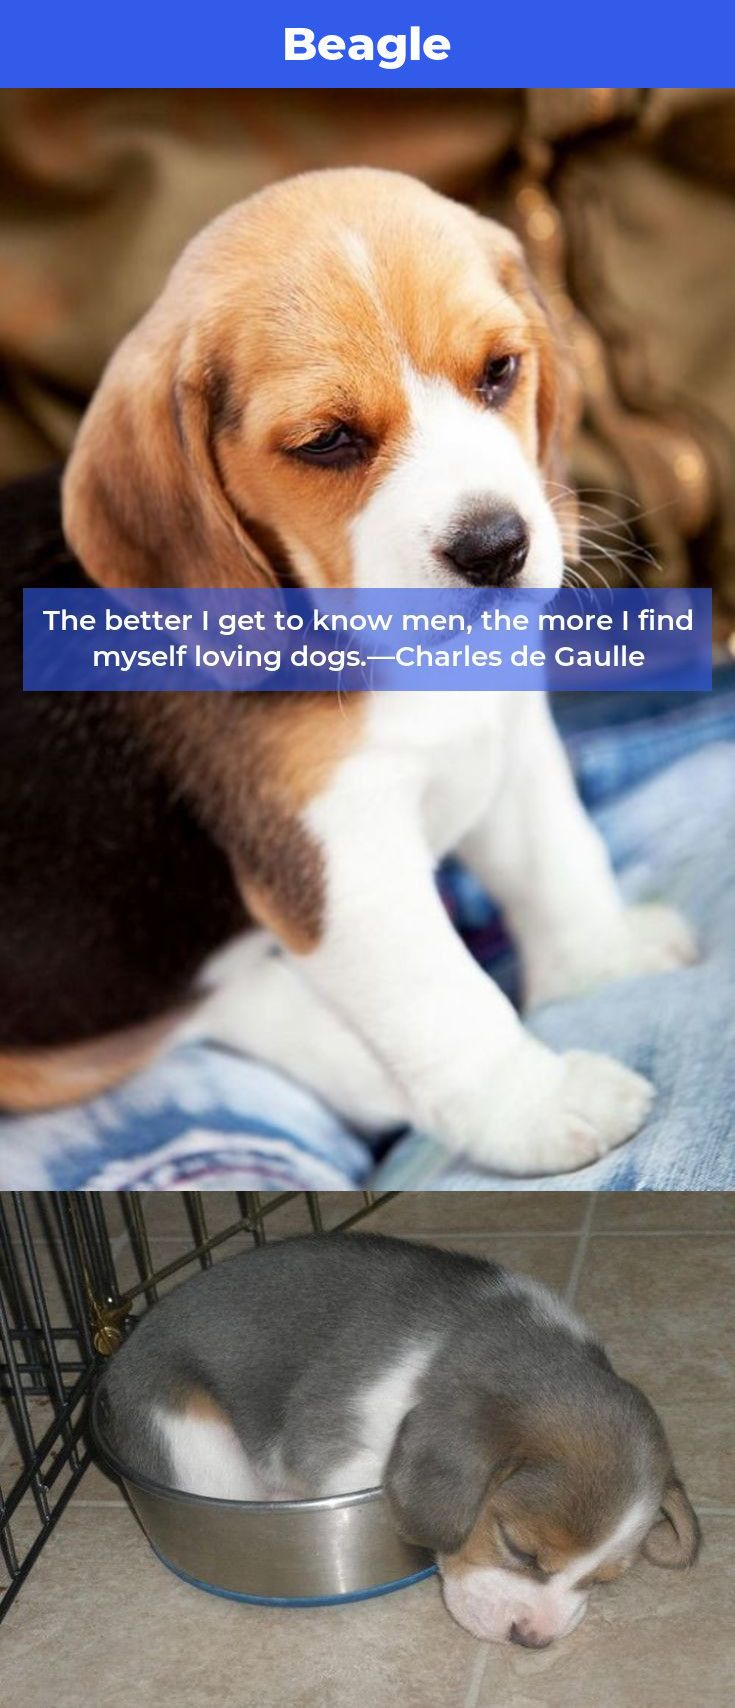 Beagle Puppy Beagles Beagles Facts Beagle Beagle Facts